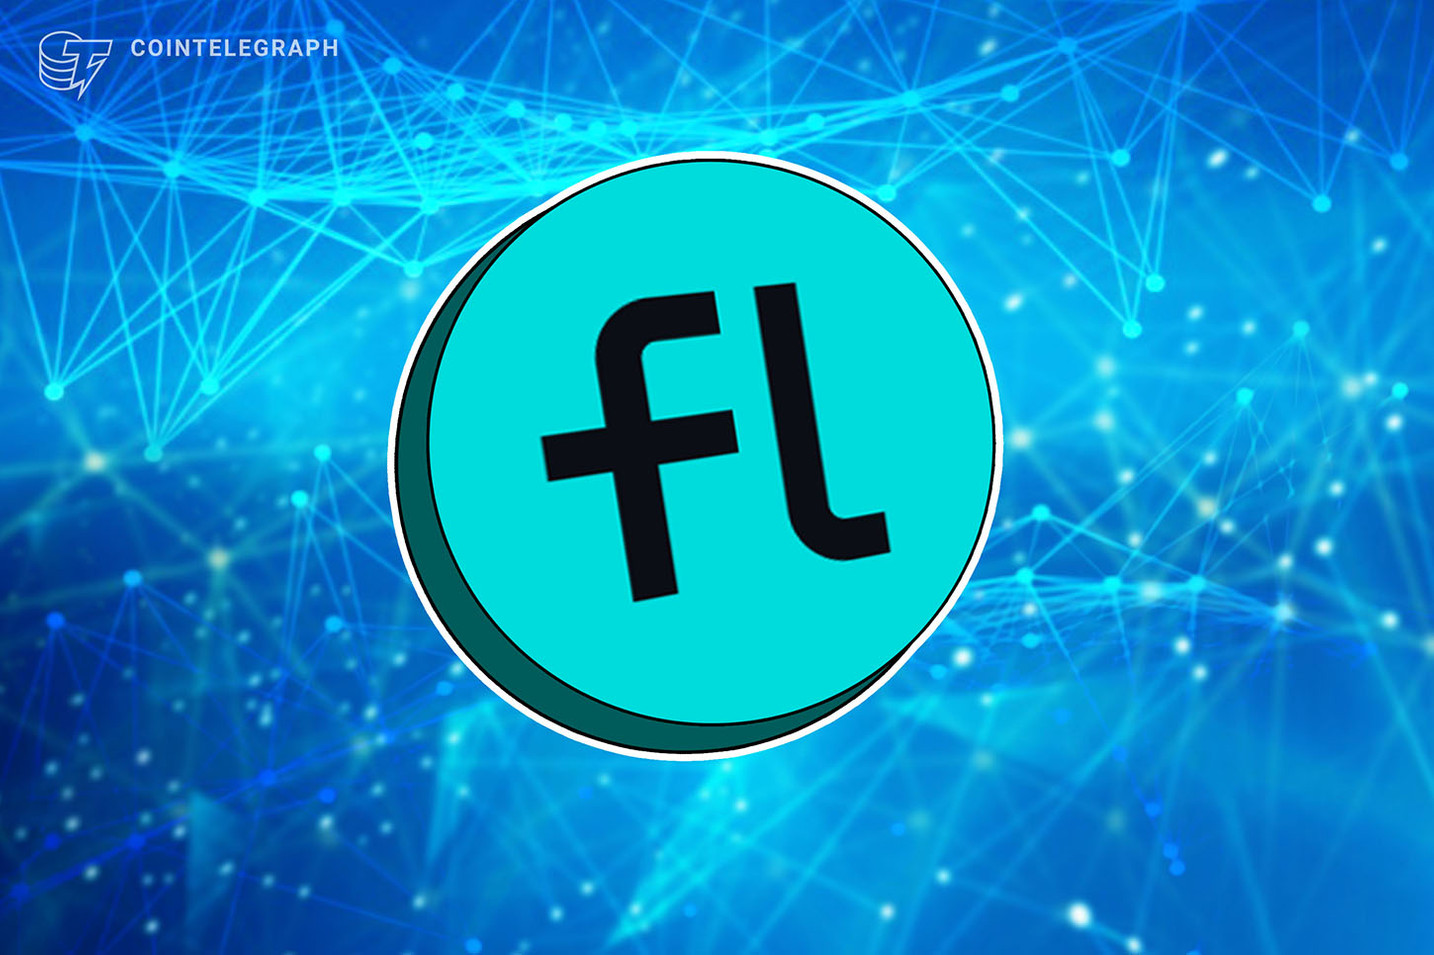 Freeliquid offers stablecoin loans Uniswap LP tokens as collateral